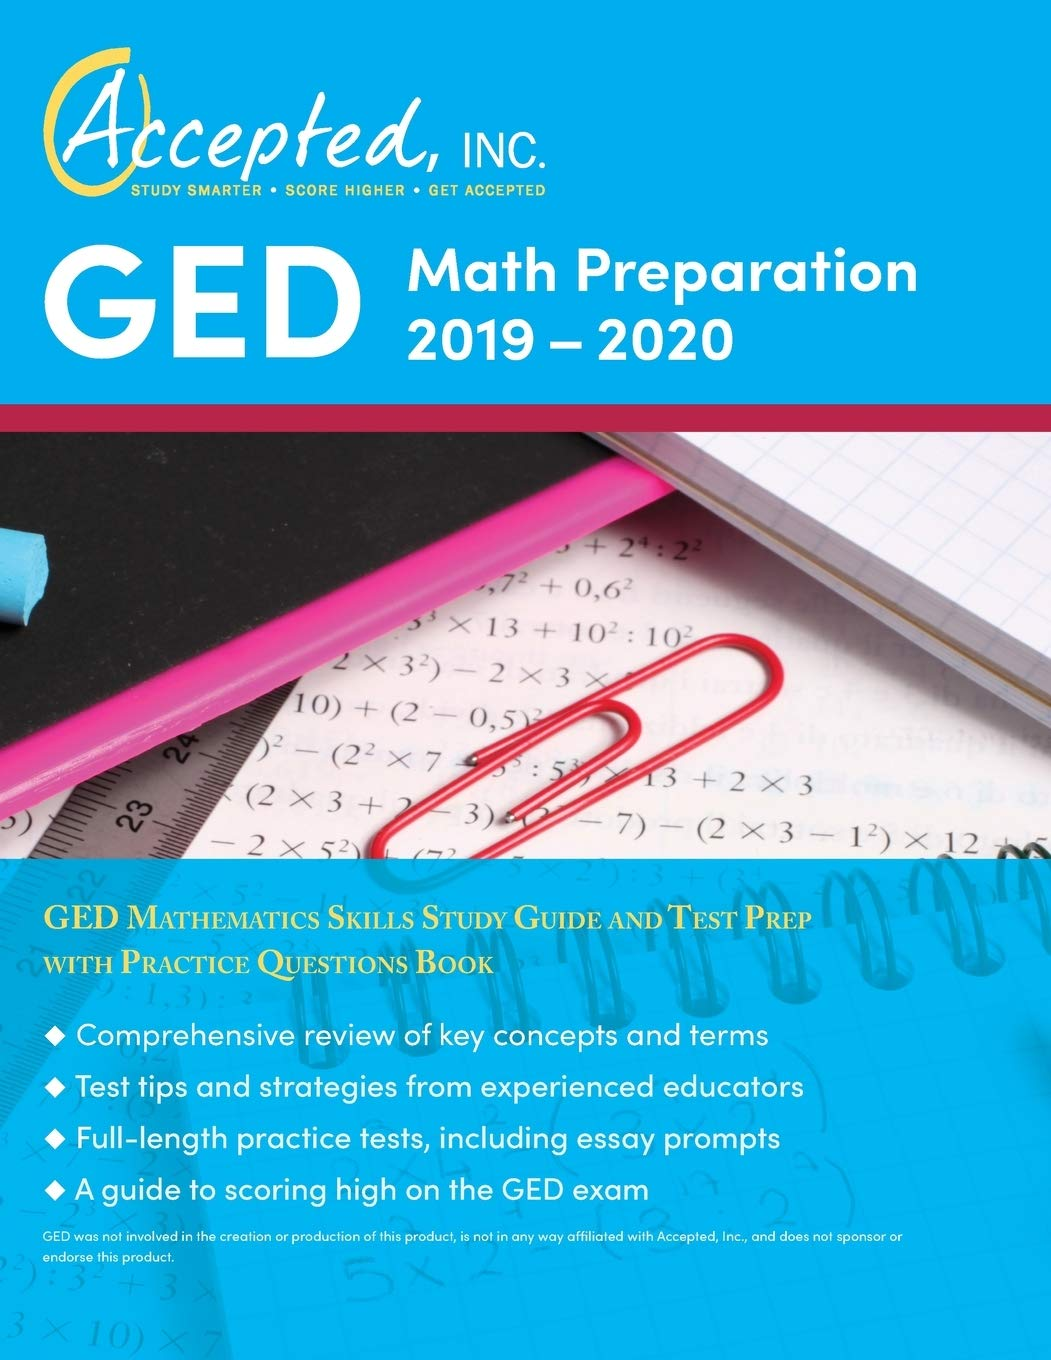 Ged Study Guide Pdf 2019